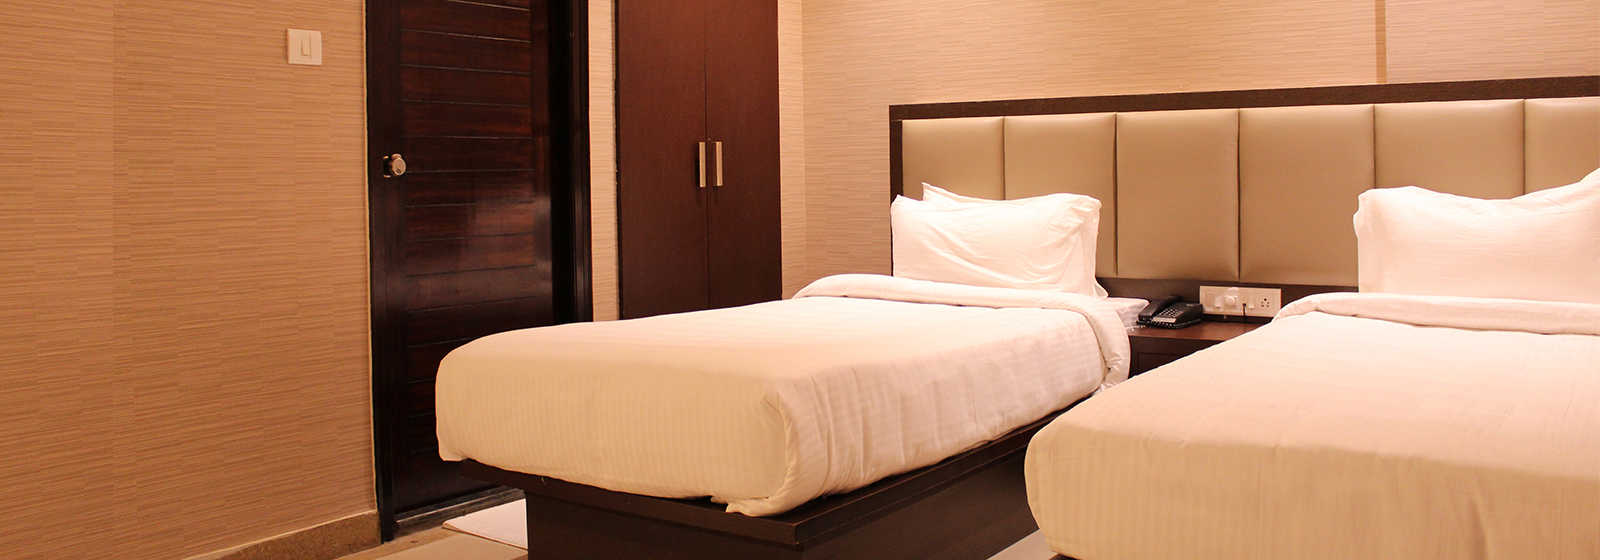 Super Deluxe room with twin beds, wardrobe and an attached bathroom at The Byke's Bangalore hotel.